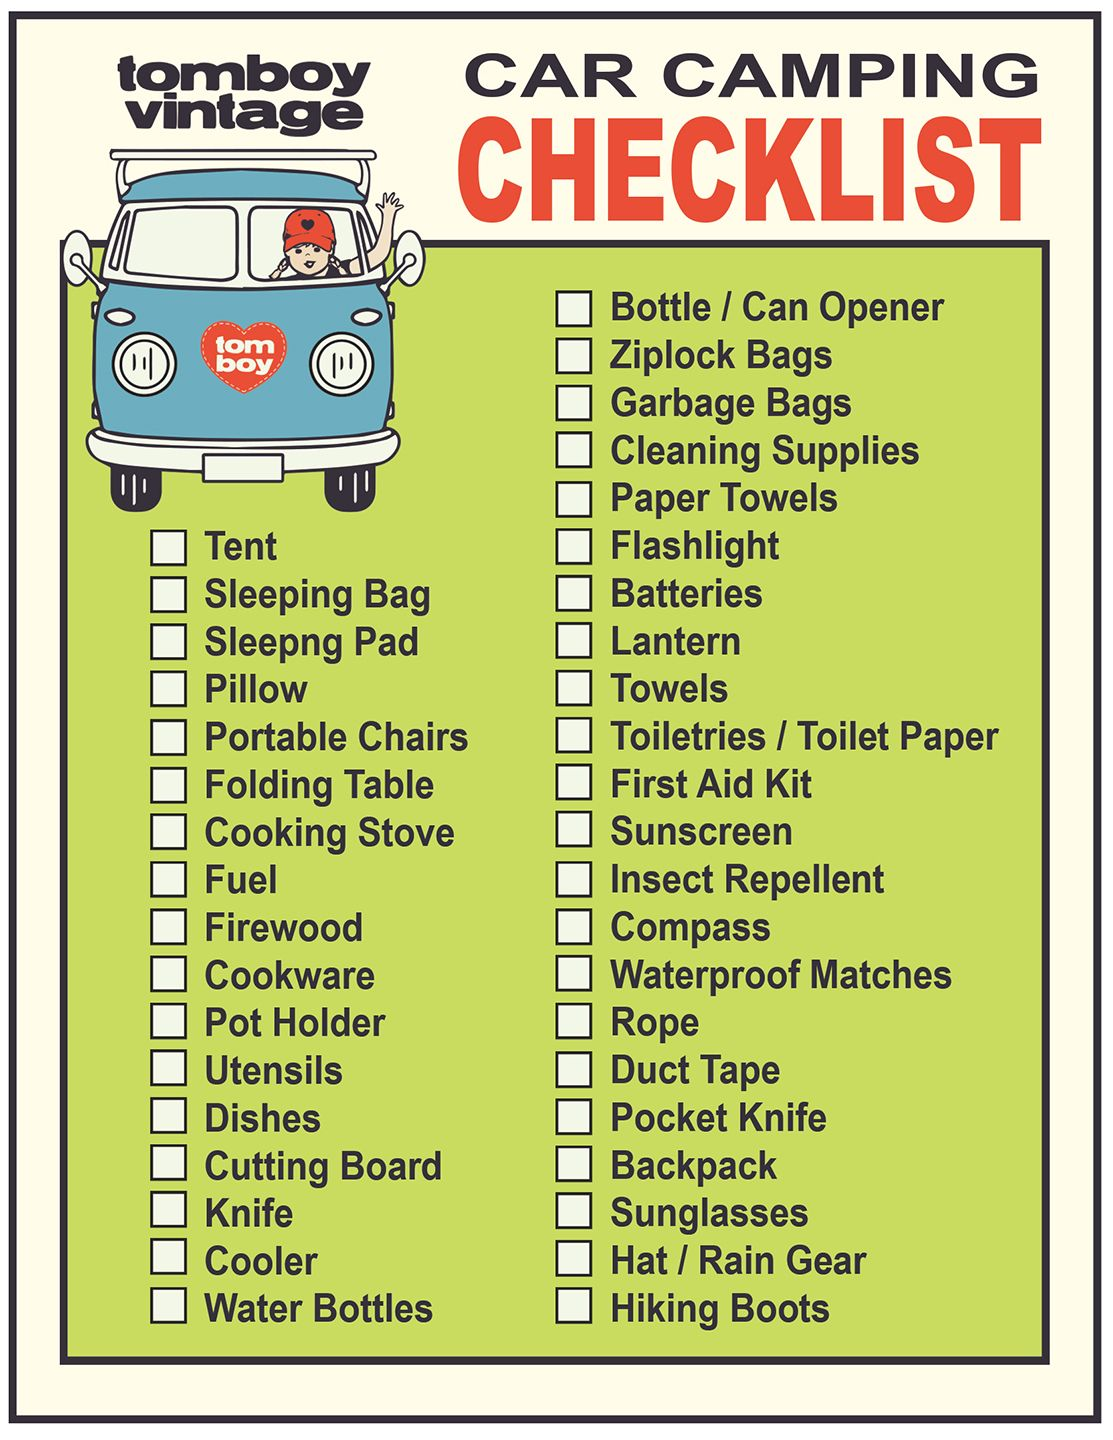 Car Camping Checklist | Say Yes to Adventure | Pinterest ...